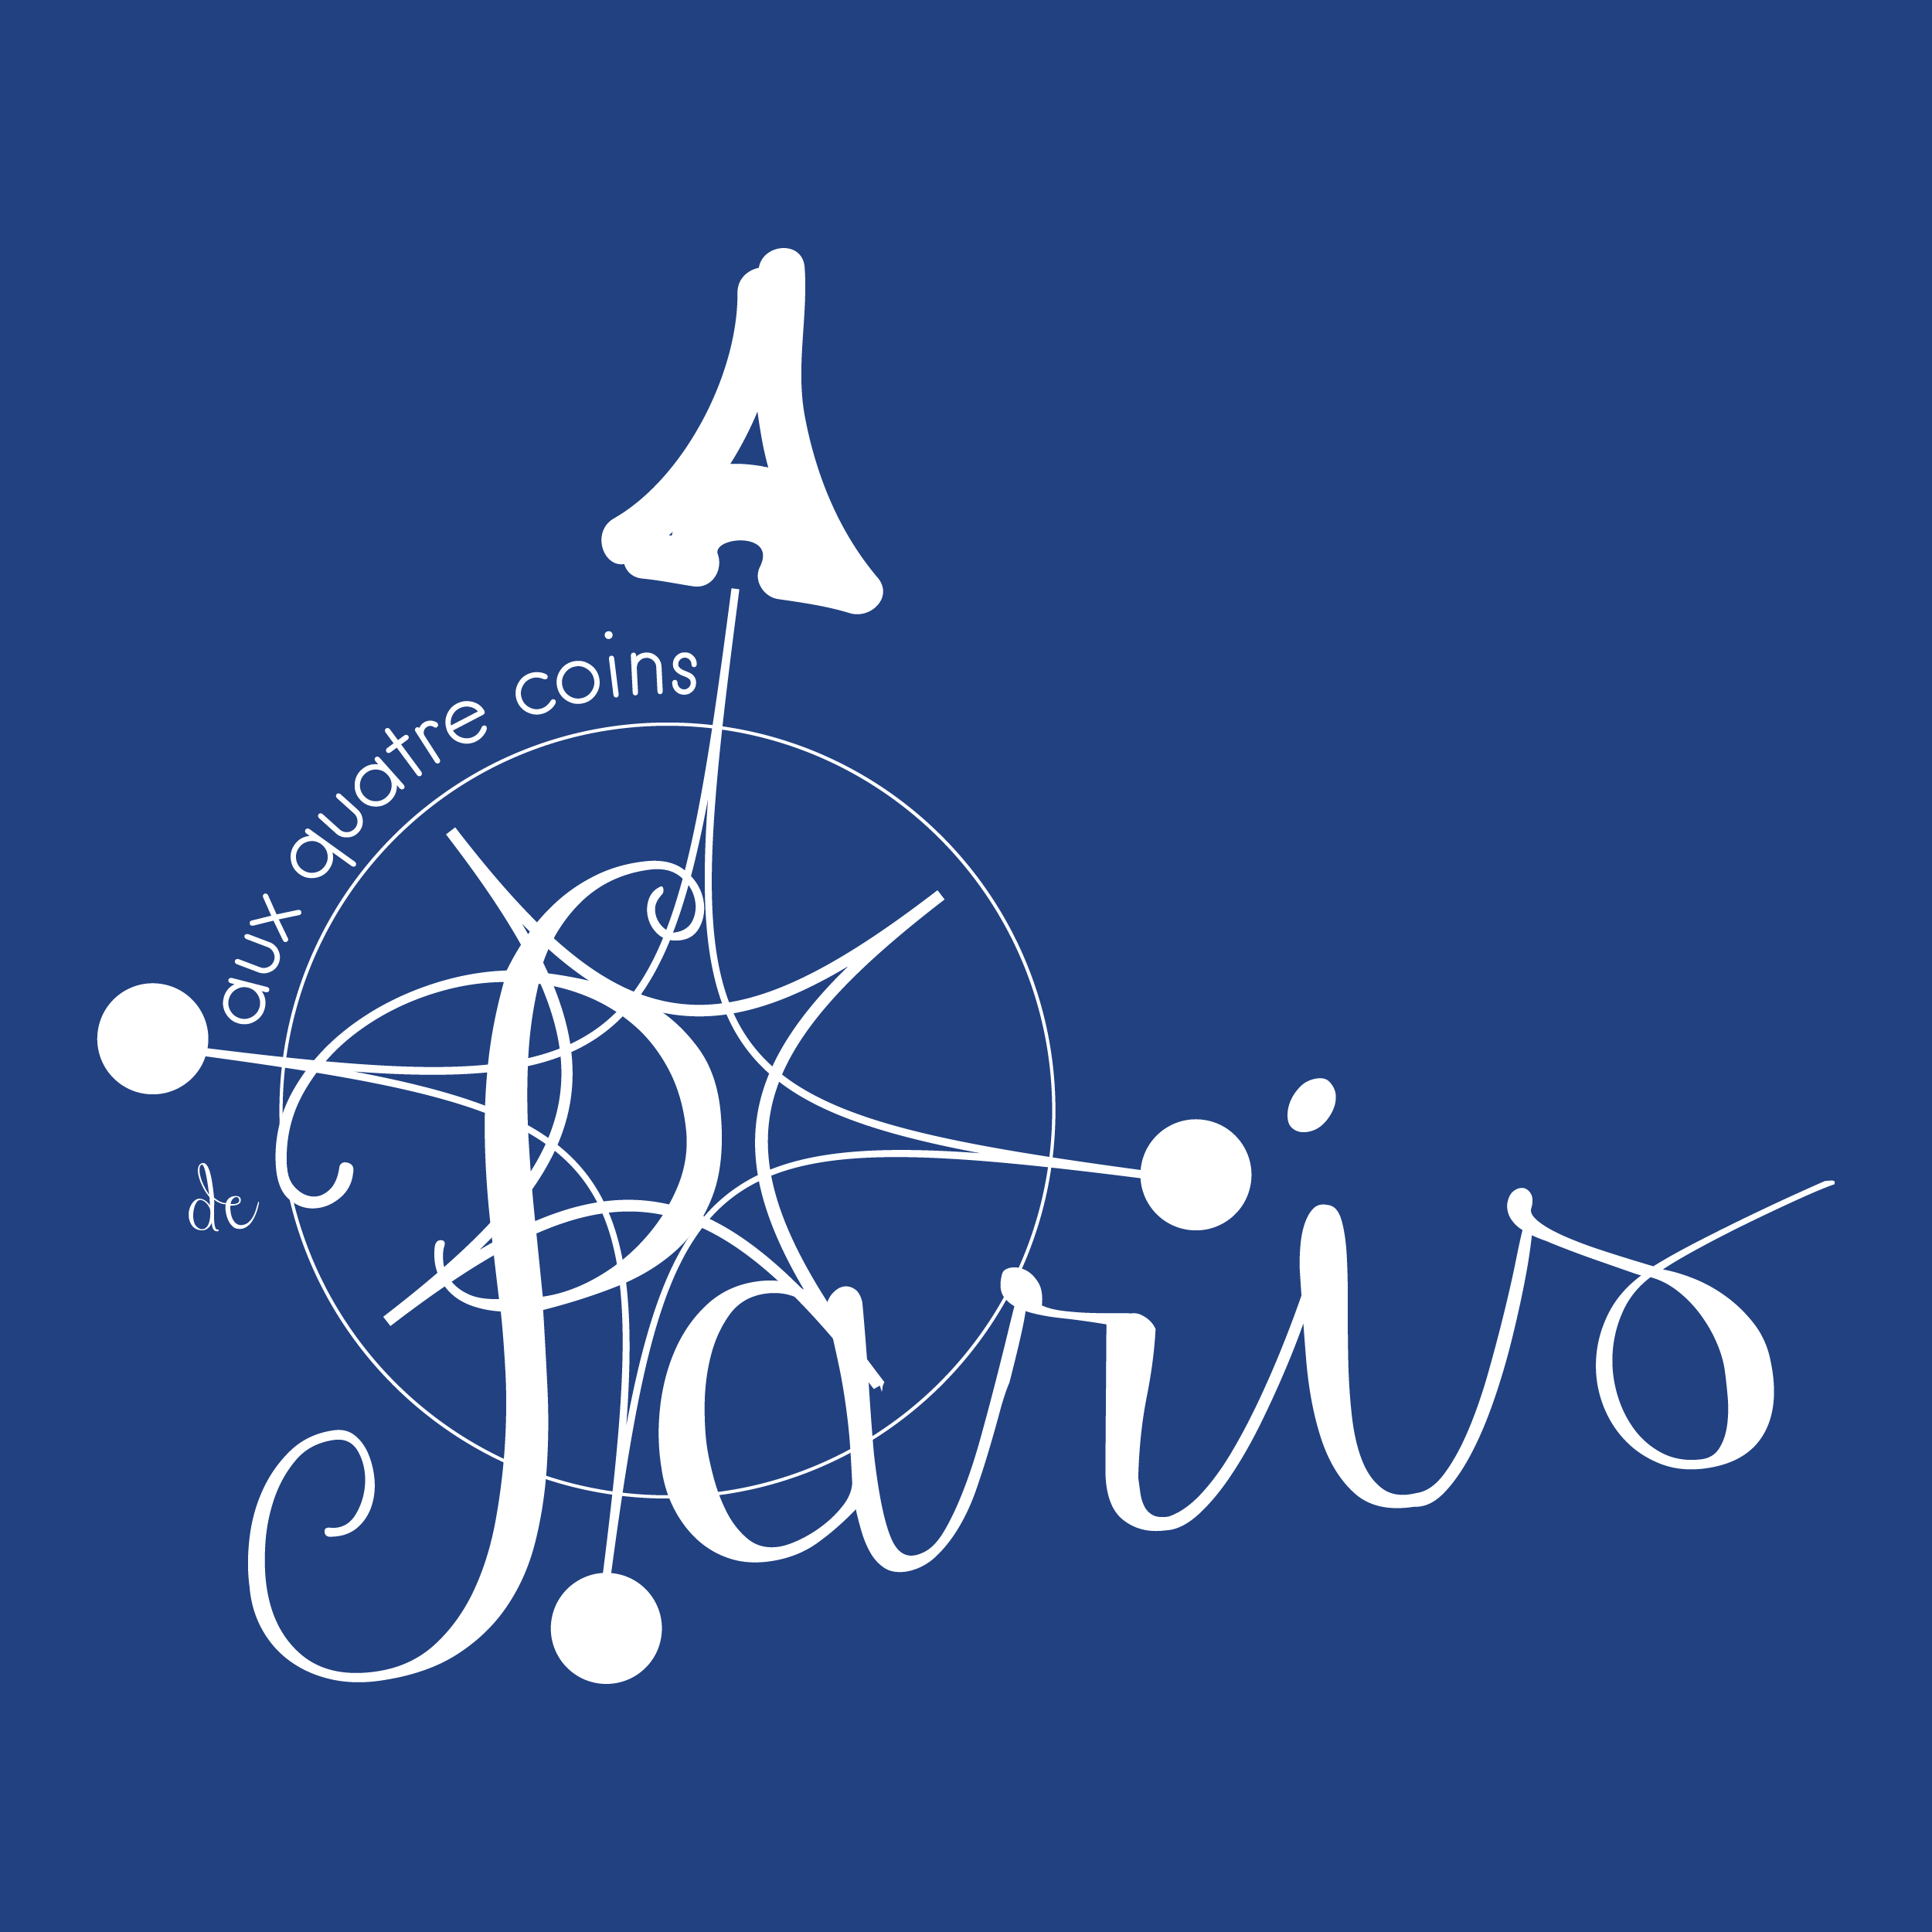 Design the logo for Aux quatre coins de Paris!